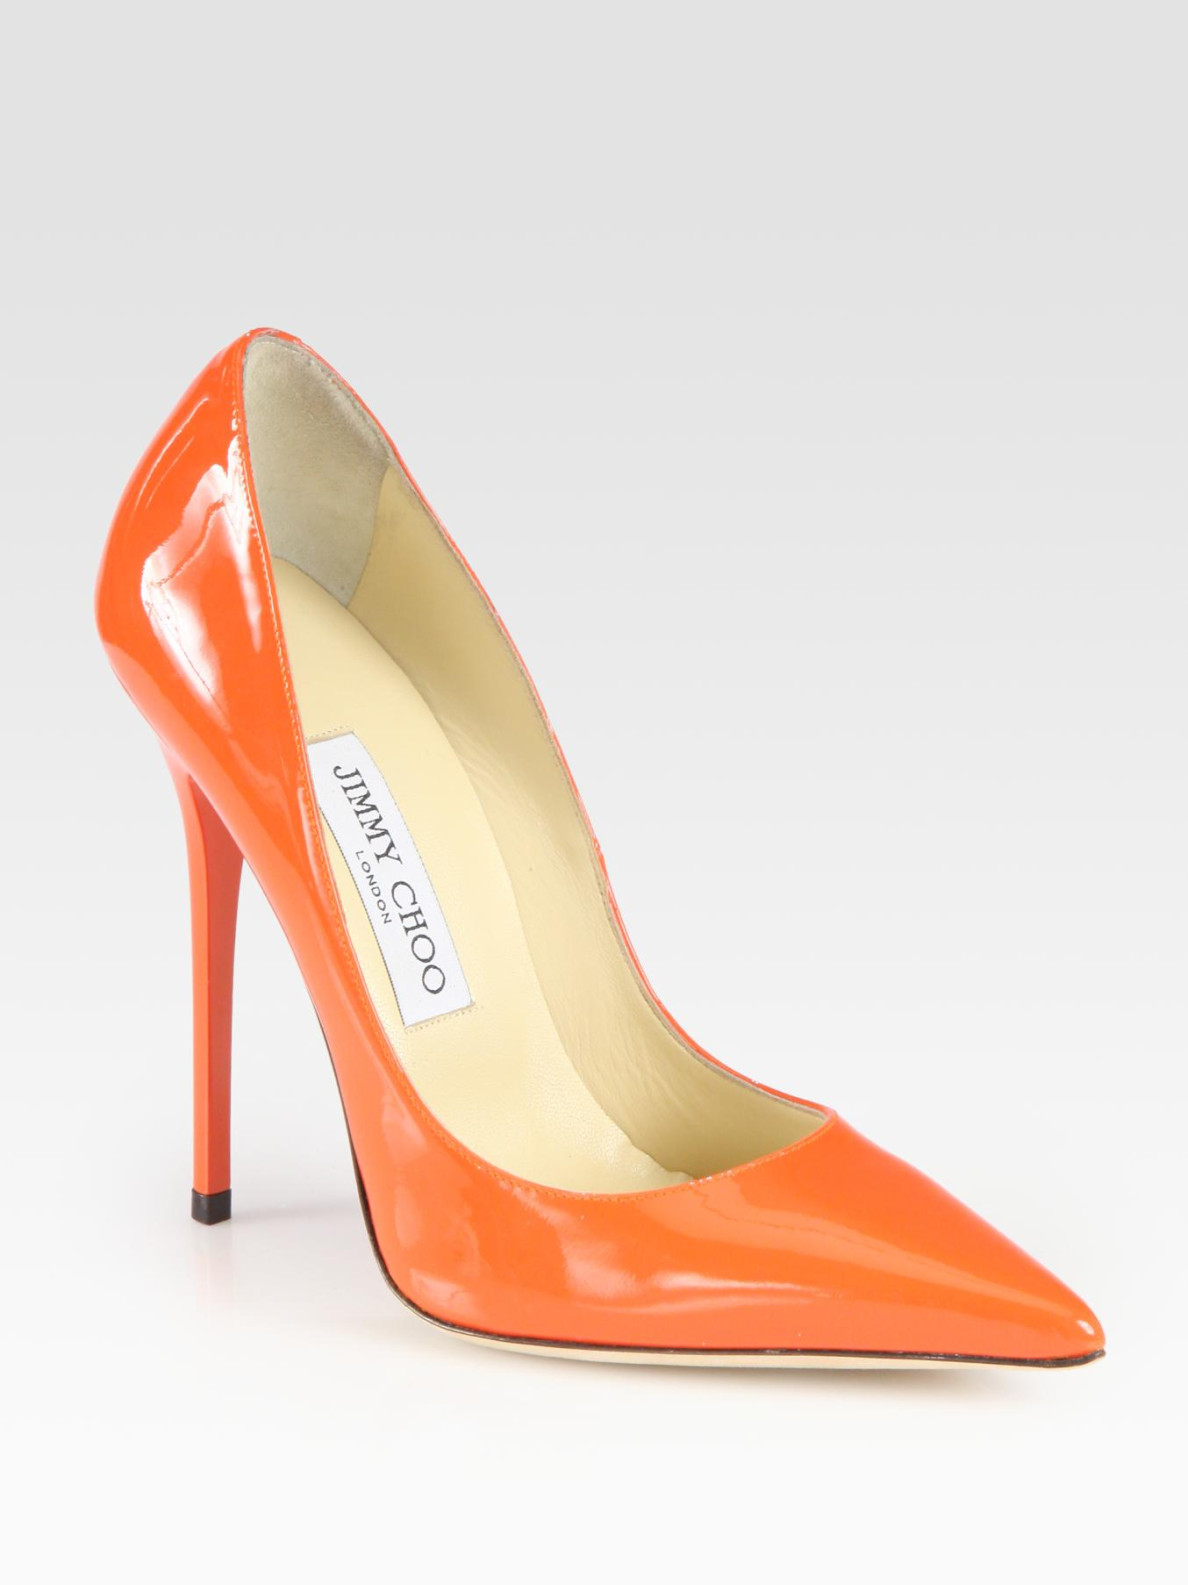 Lyst Jimmy Choo Anouk Patent Leather Pumps In Orange